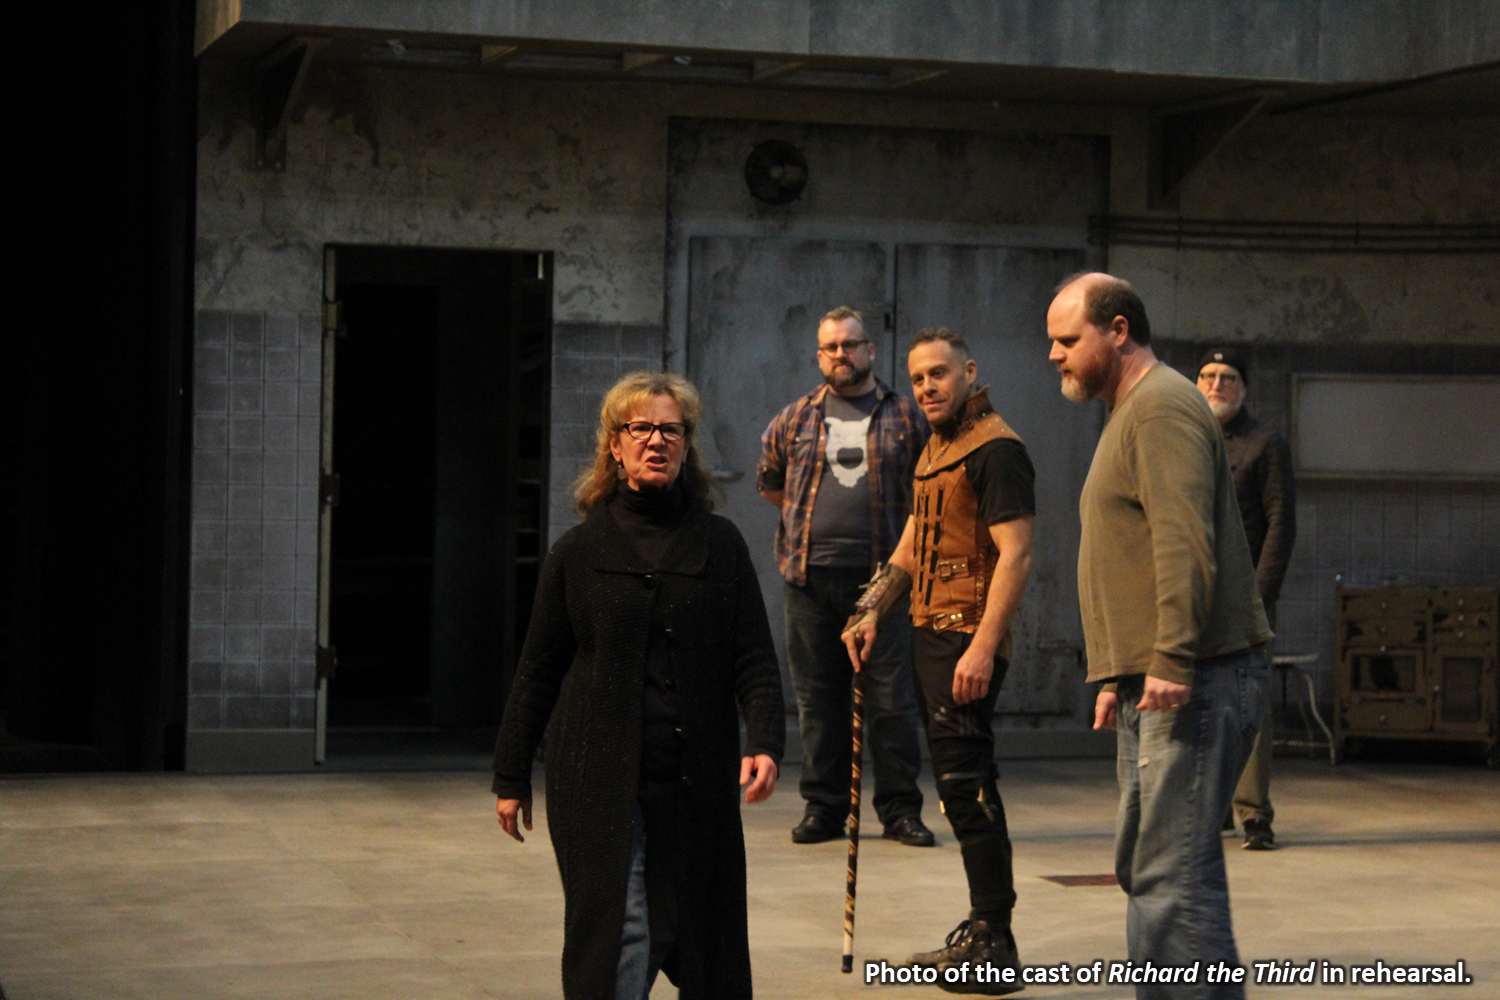 Photo of the cast of Richard the Third in rehearsal.